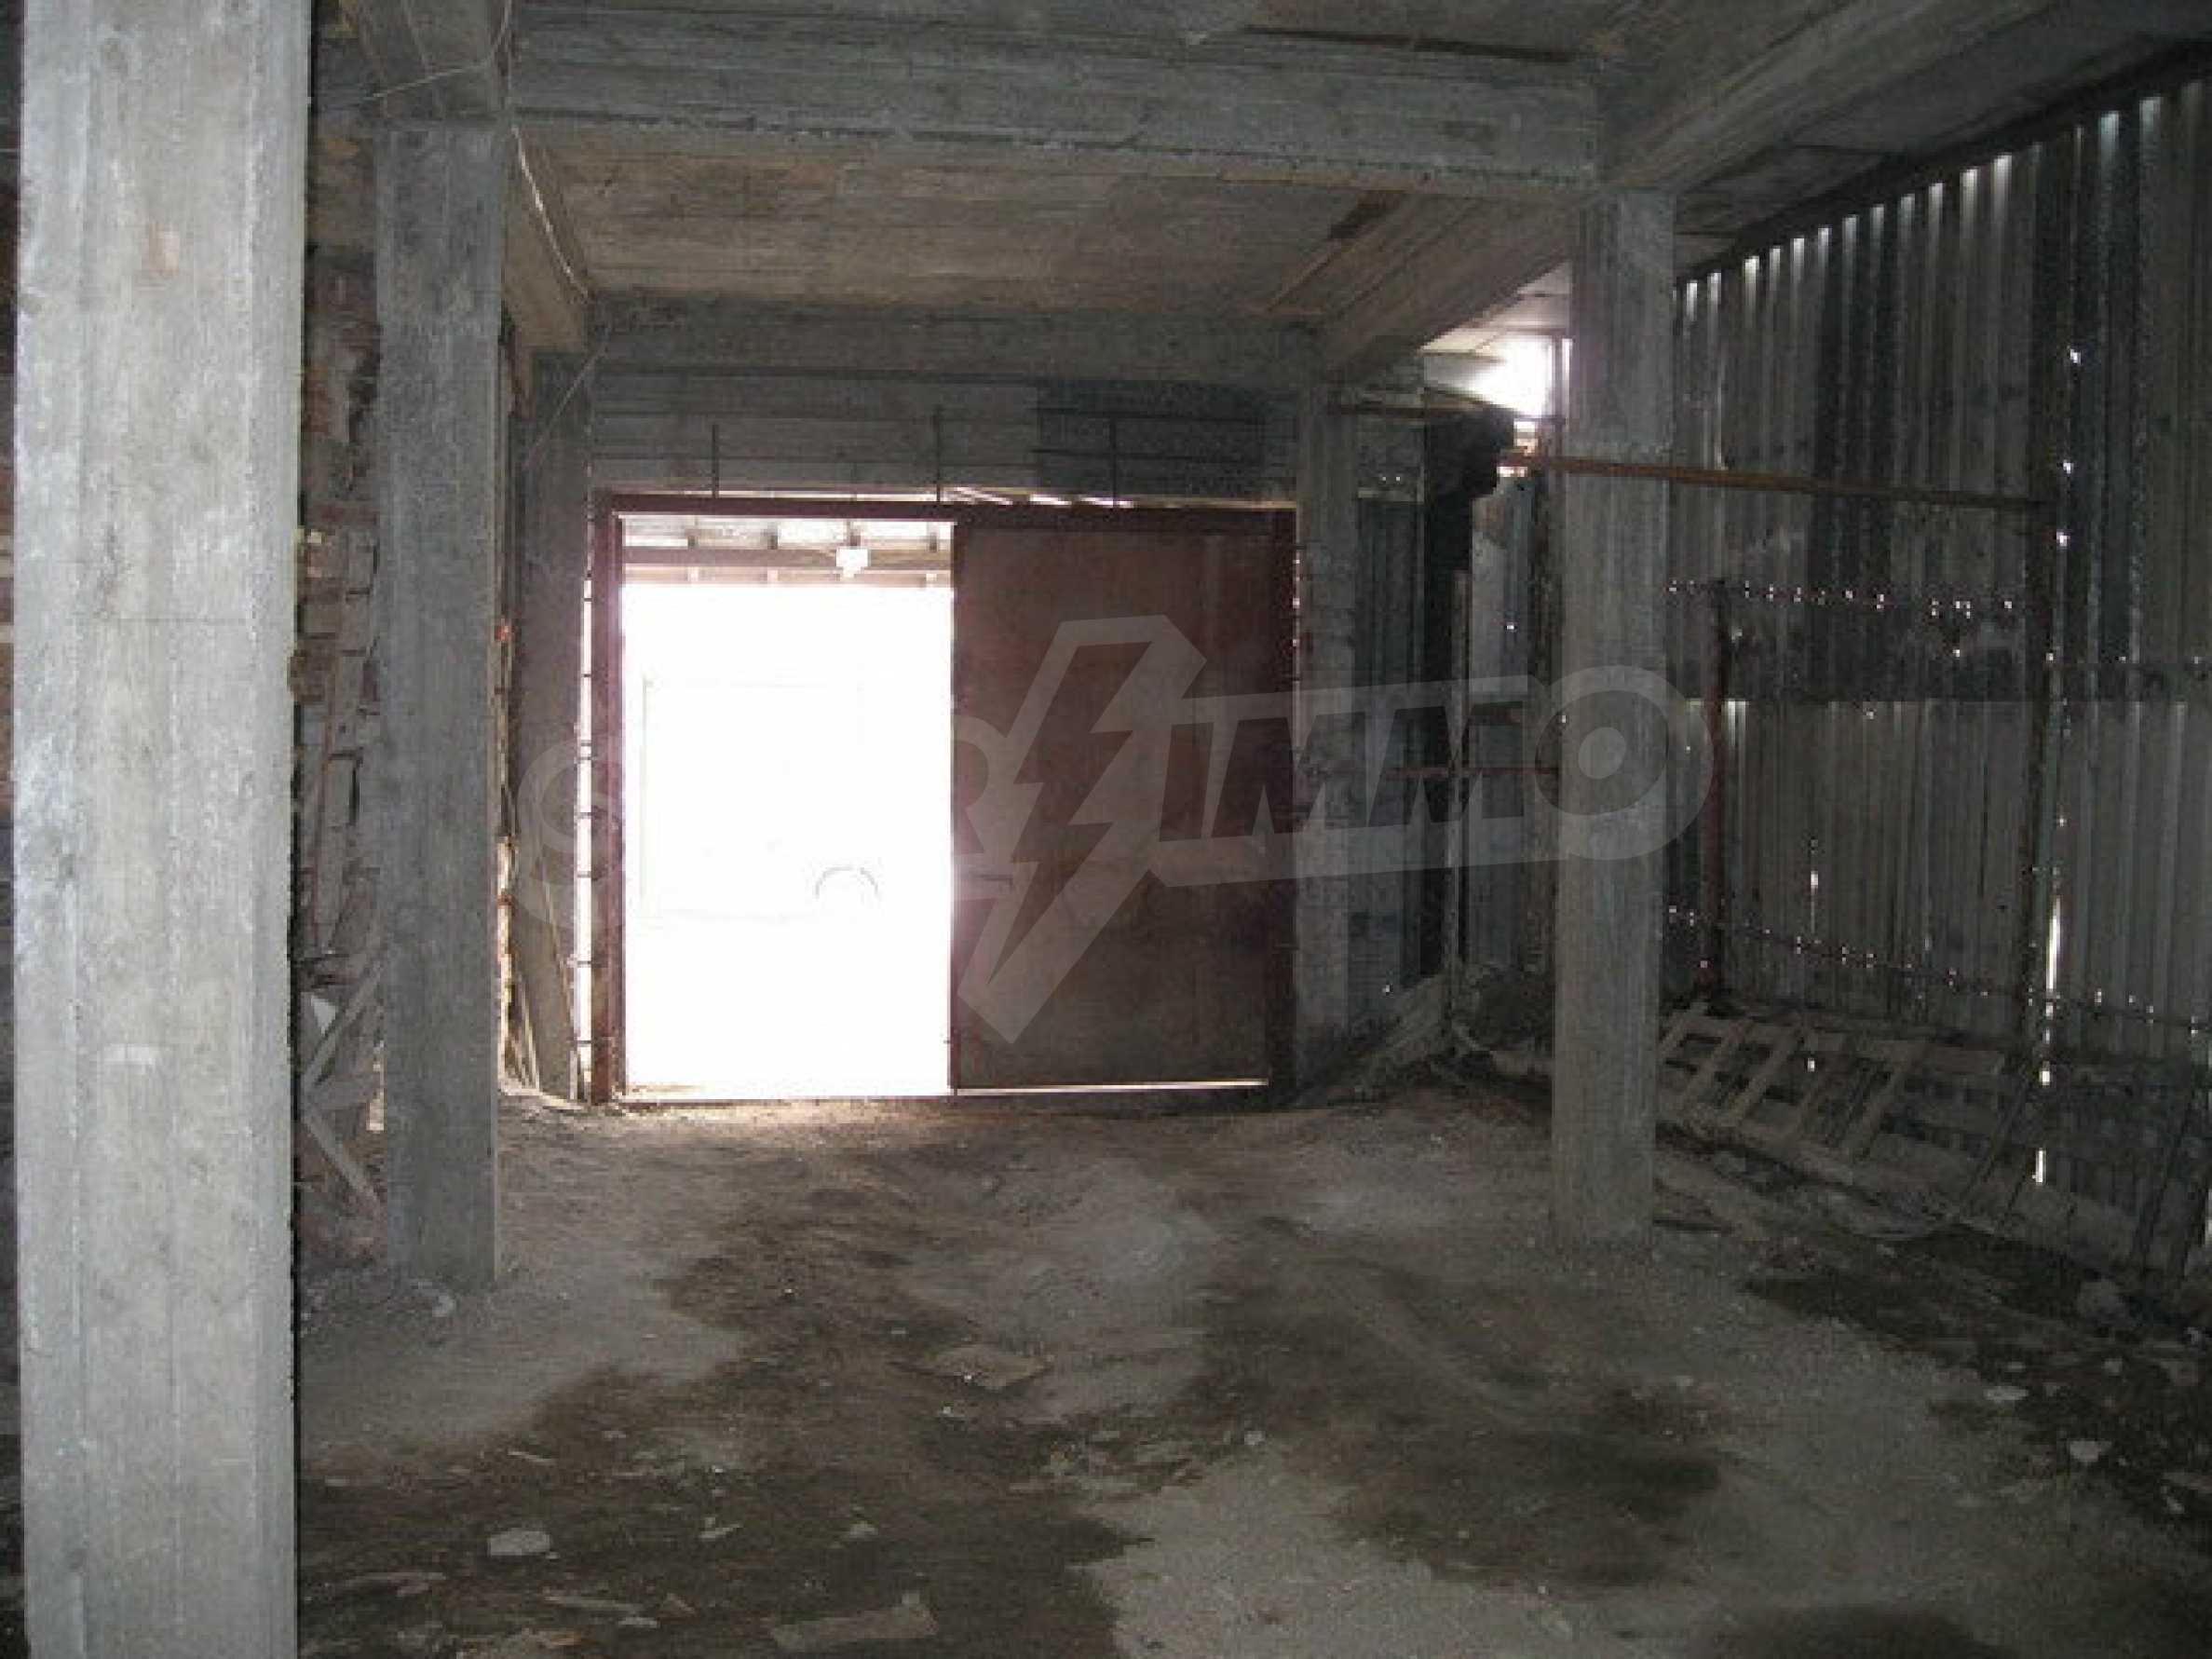 Commercial property on 3 levels for sale in Veliko Tarnovo  13